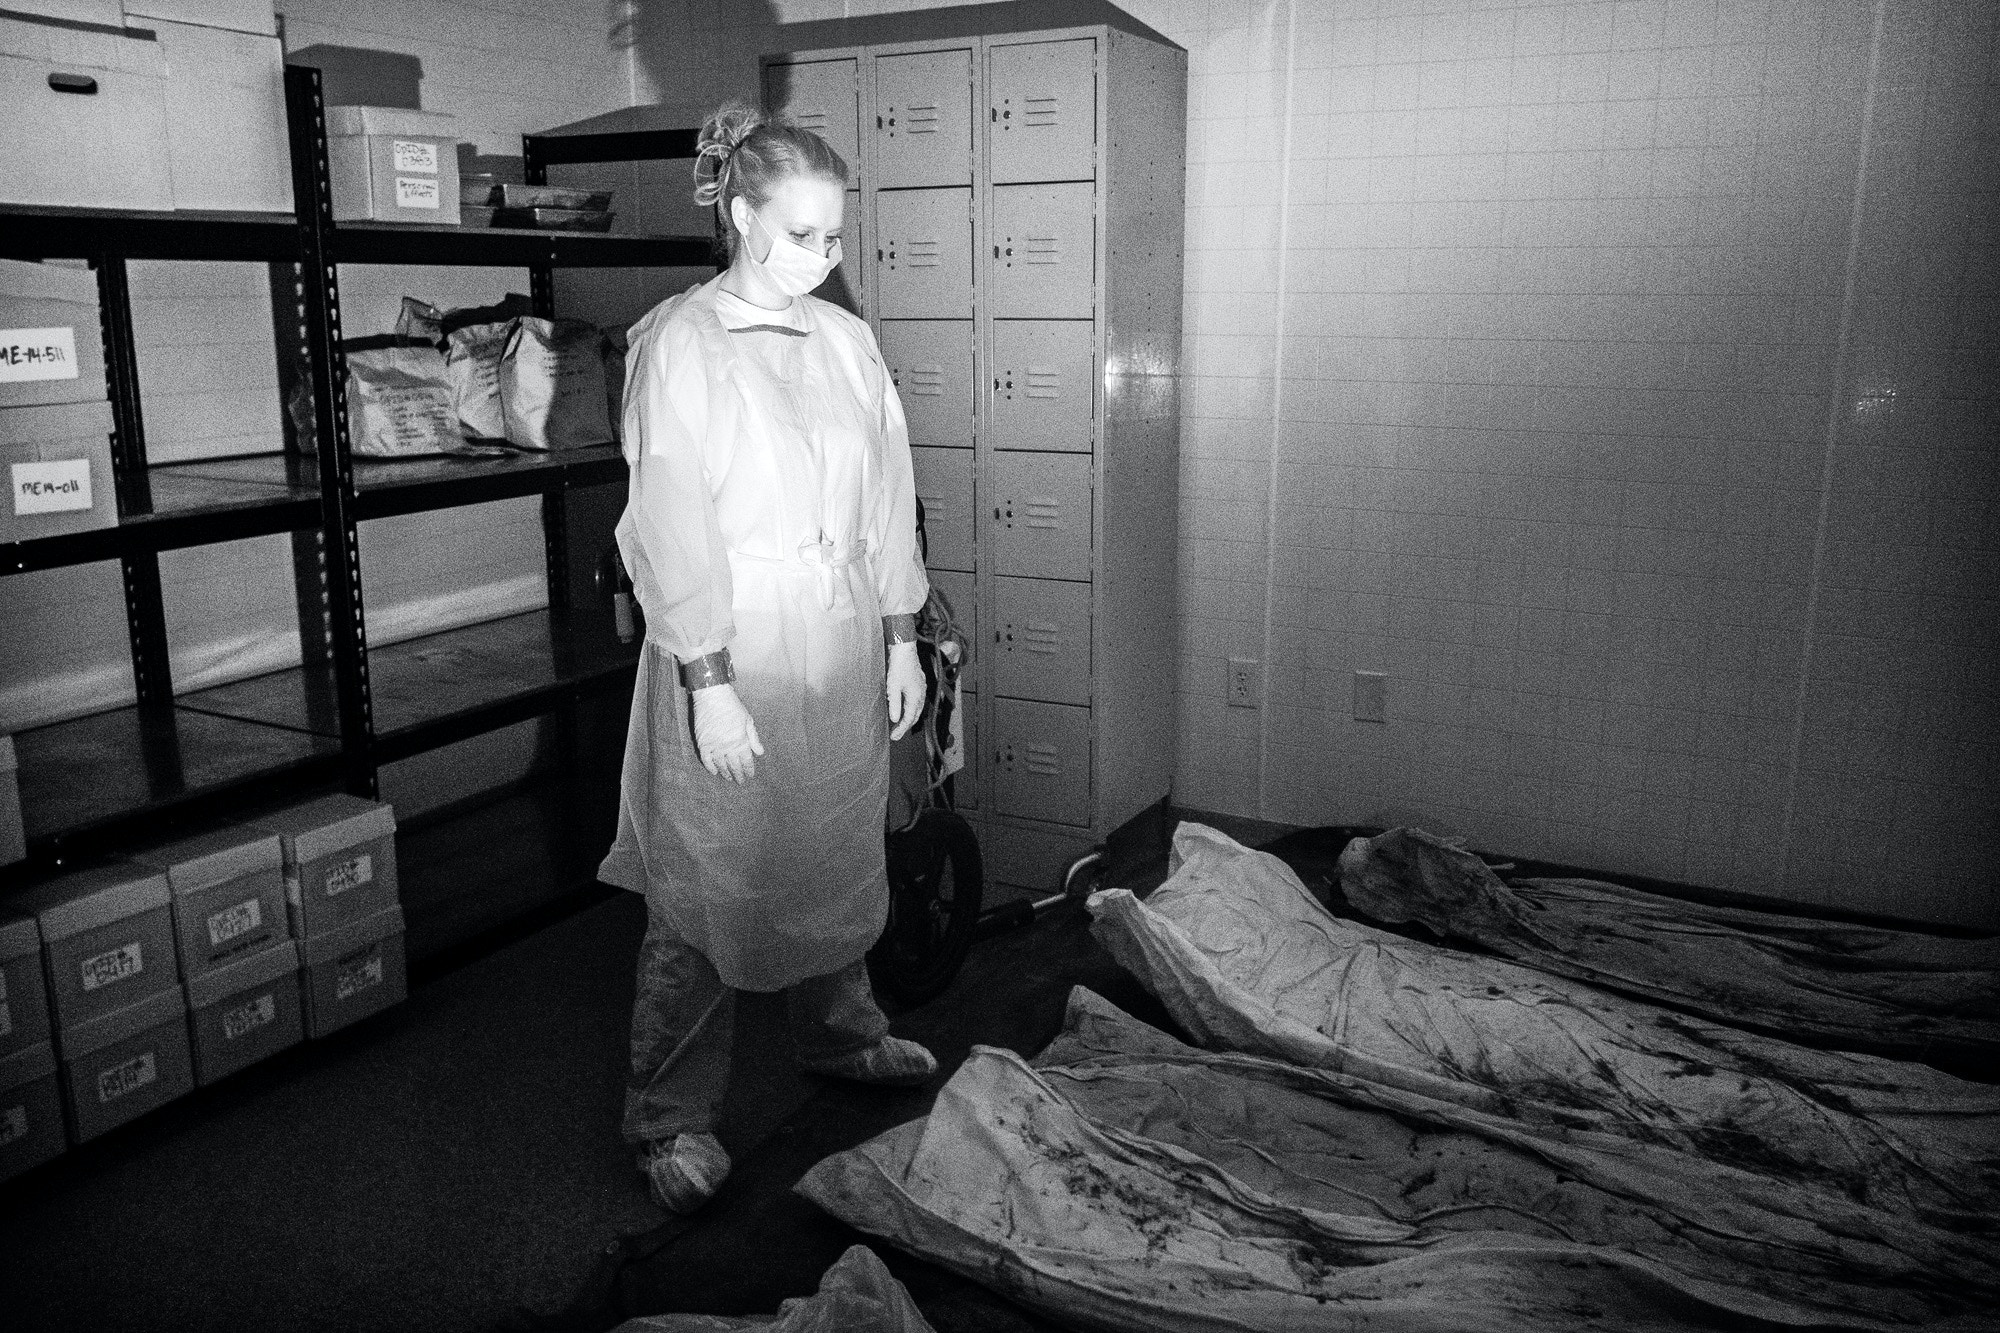 Graduate student Devora Gleiber examines unidentified victims' remains inside an evidence room at Texas State University in San Marcos, Texas, February 12, 2016. Texas State maintains custody of over 200 sets of human remains as part of Operation Identification (OpID), an intiative to identify and repatriate the remains of suspected migrants recovered along the U.S.-Mexico border.